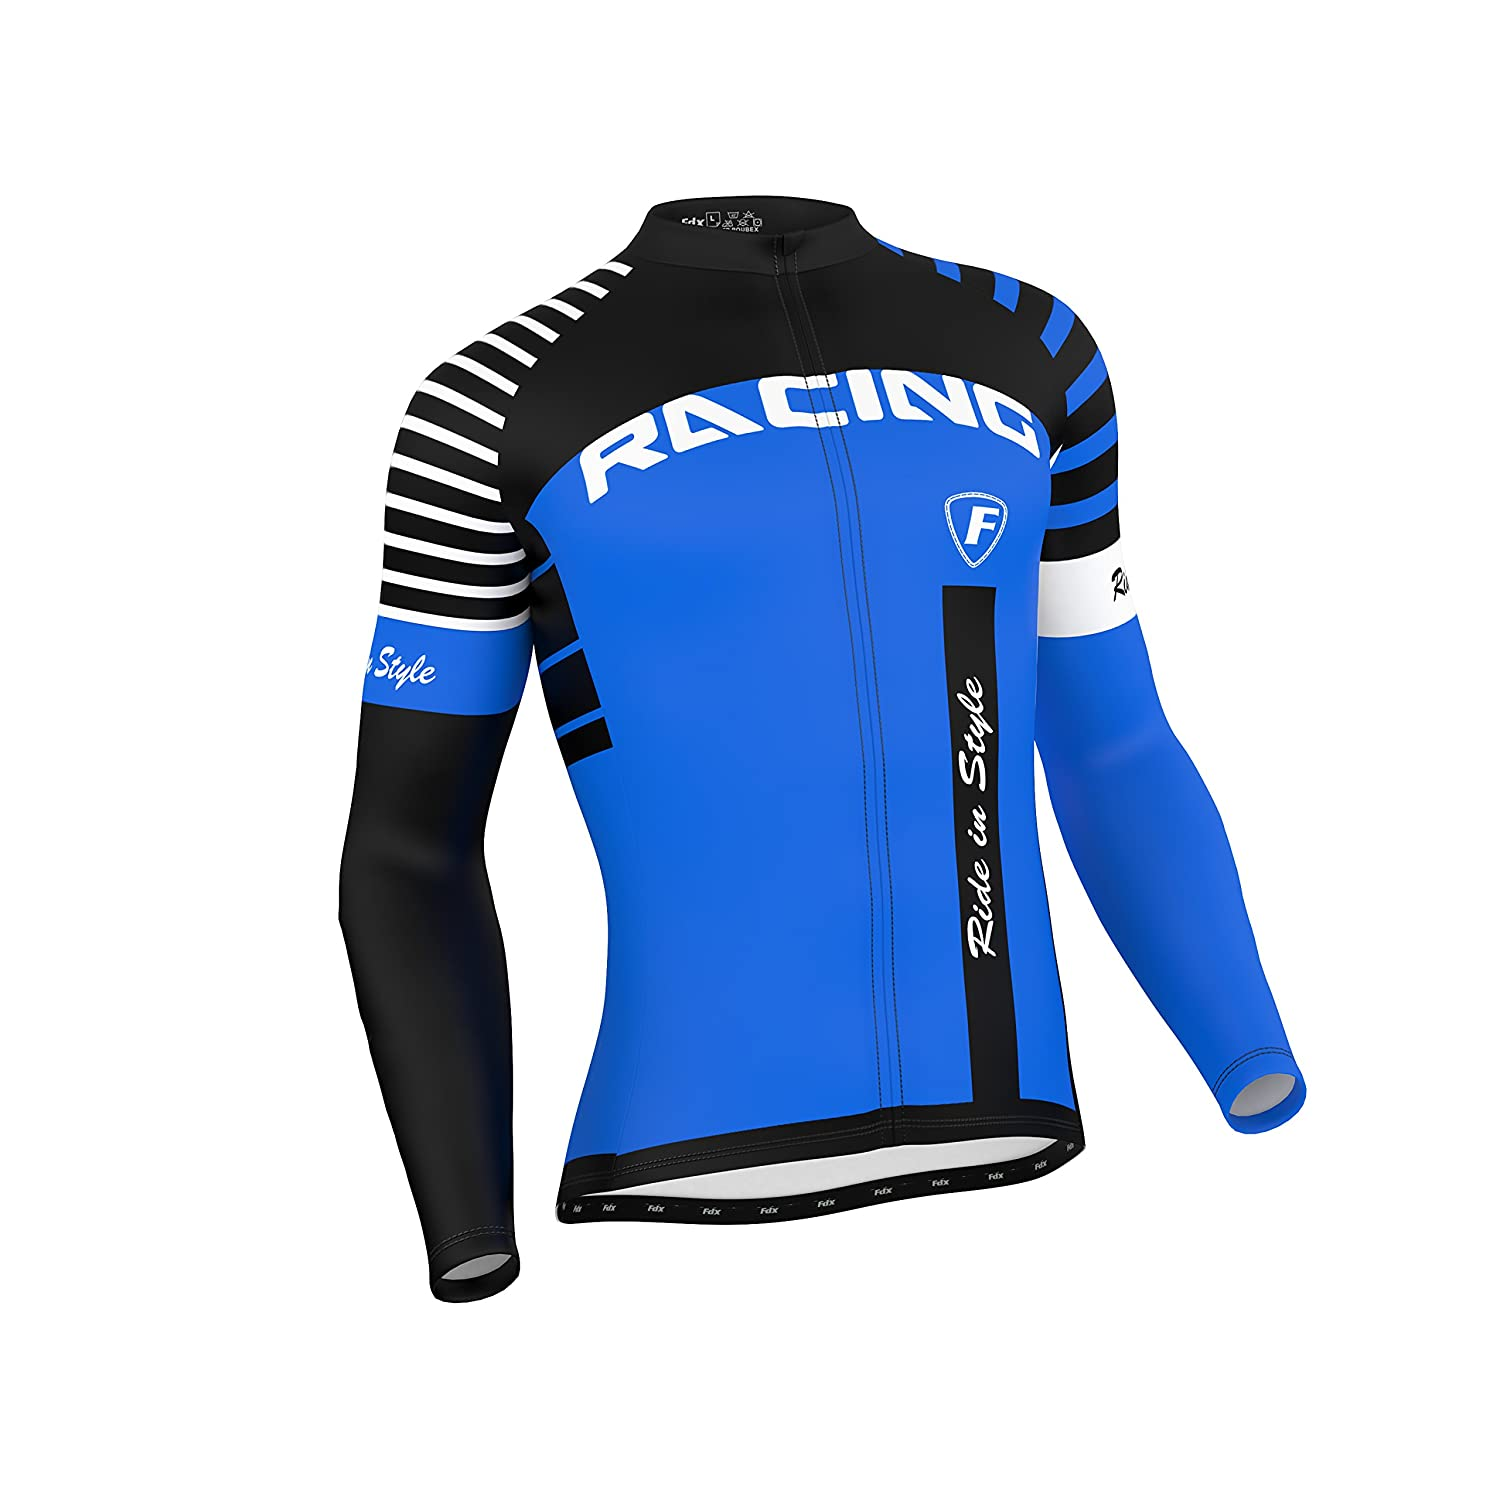 f2921b5734 FDX Mens Blaze Cycling Jersey Full Sleeve Thermal Fleece Team Racing  Cycling Top: Amazon.co.uk: Sports & Outdoors